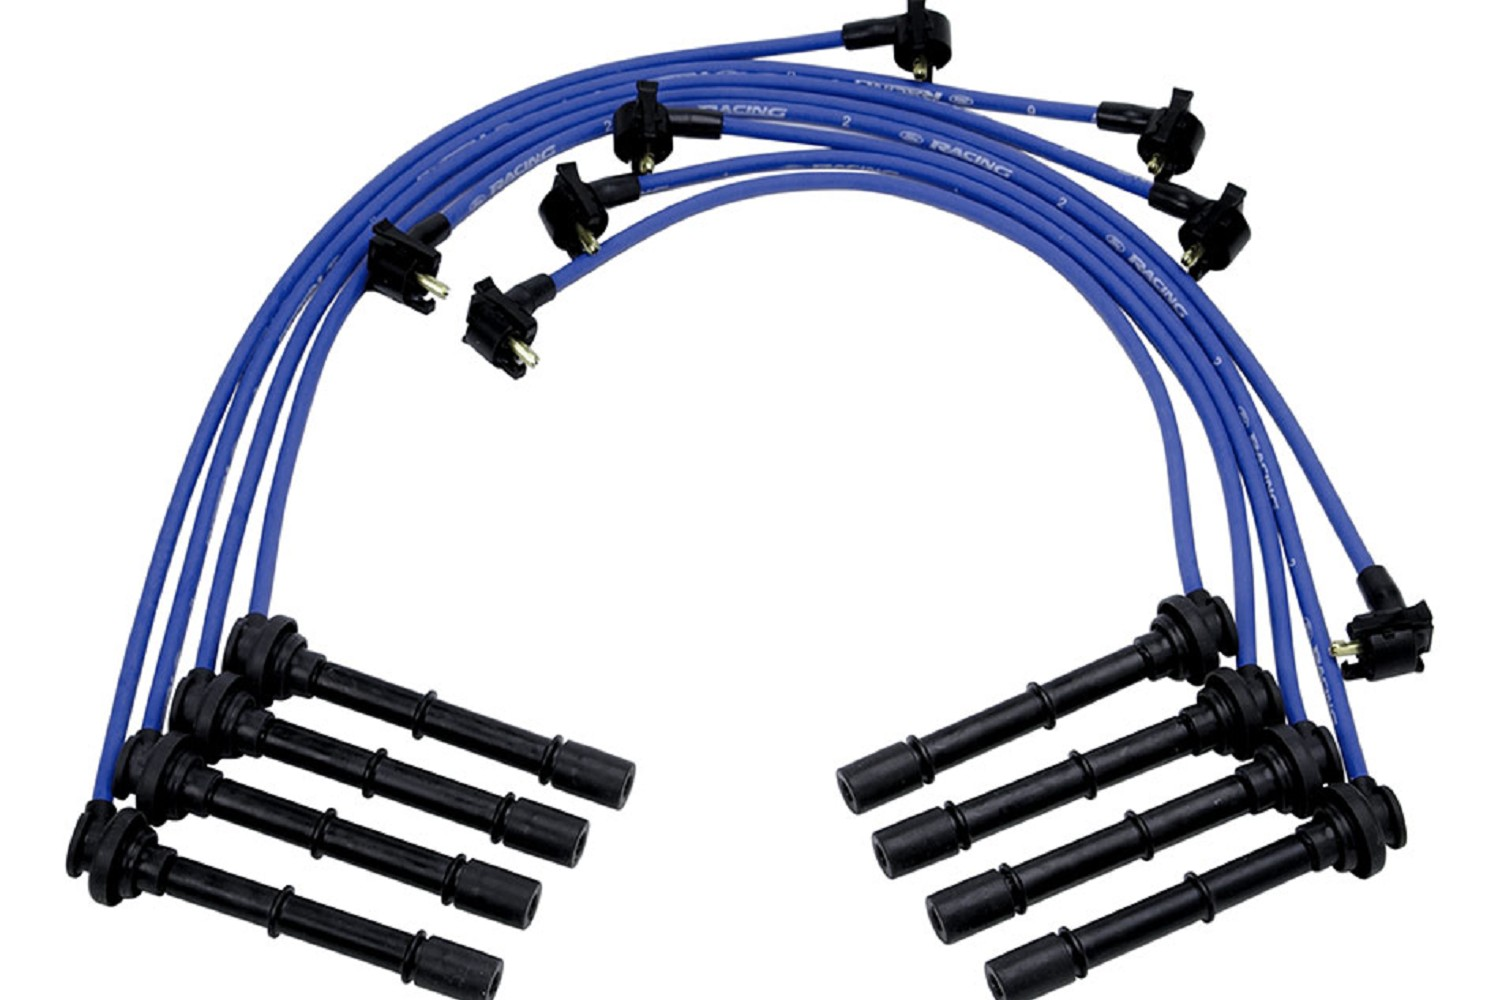 Ford Performance 9 mm Mustang Spark Plug Wires - 96-98 Cobra, 161 M ...